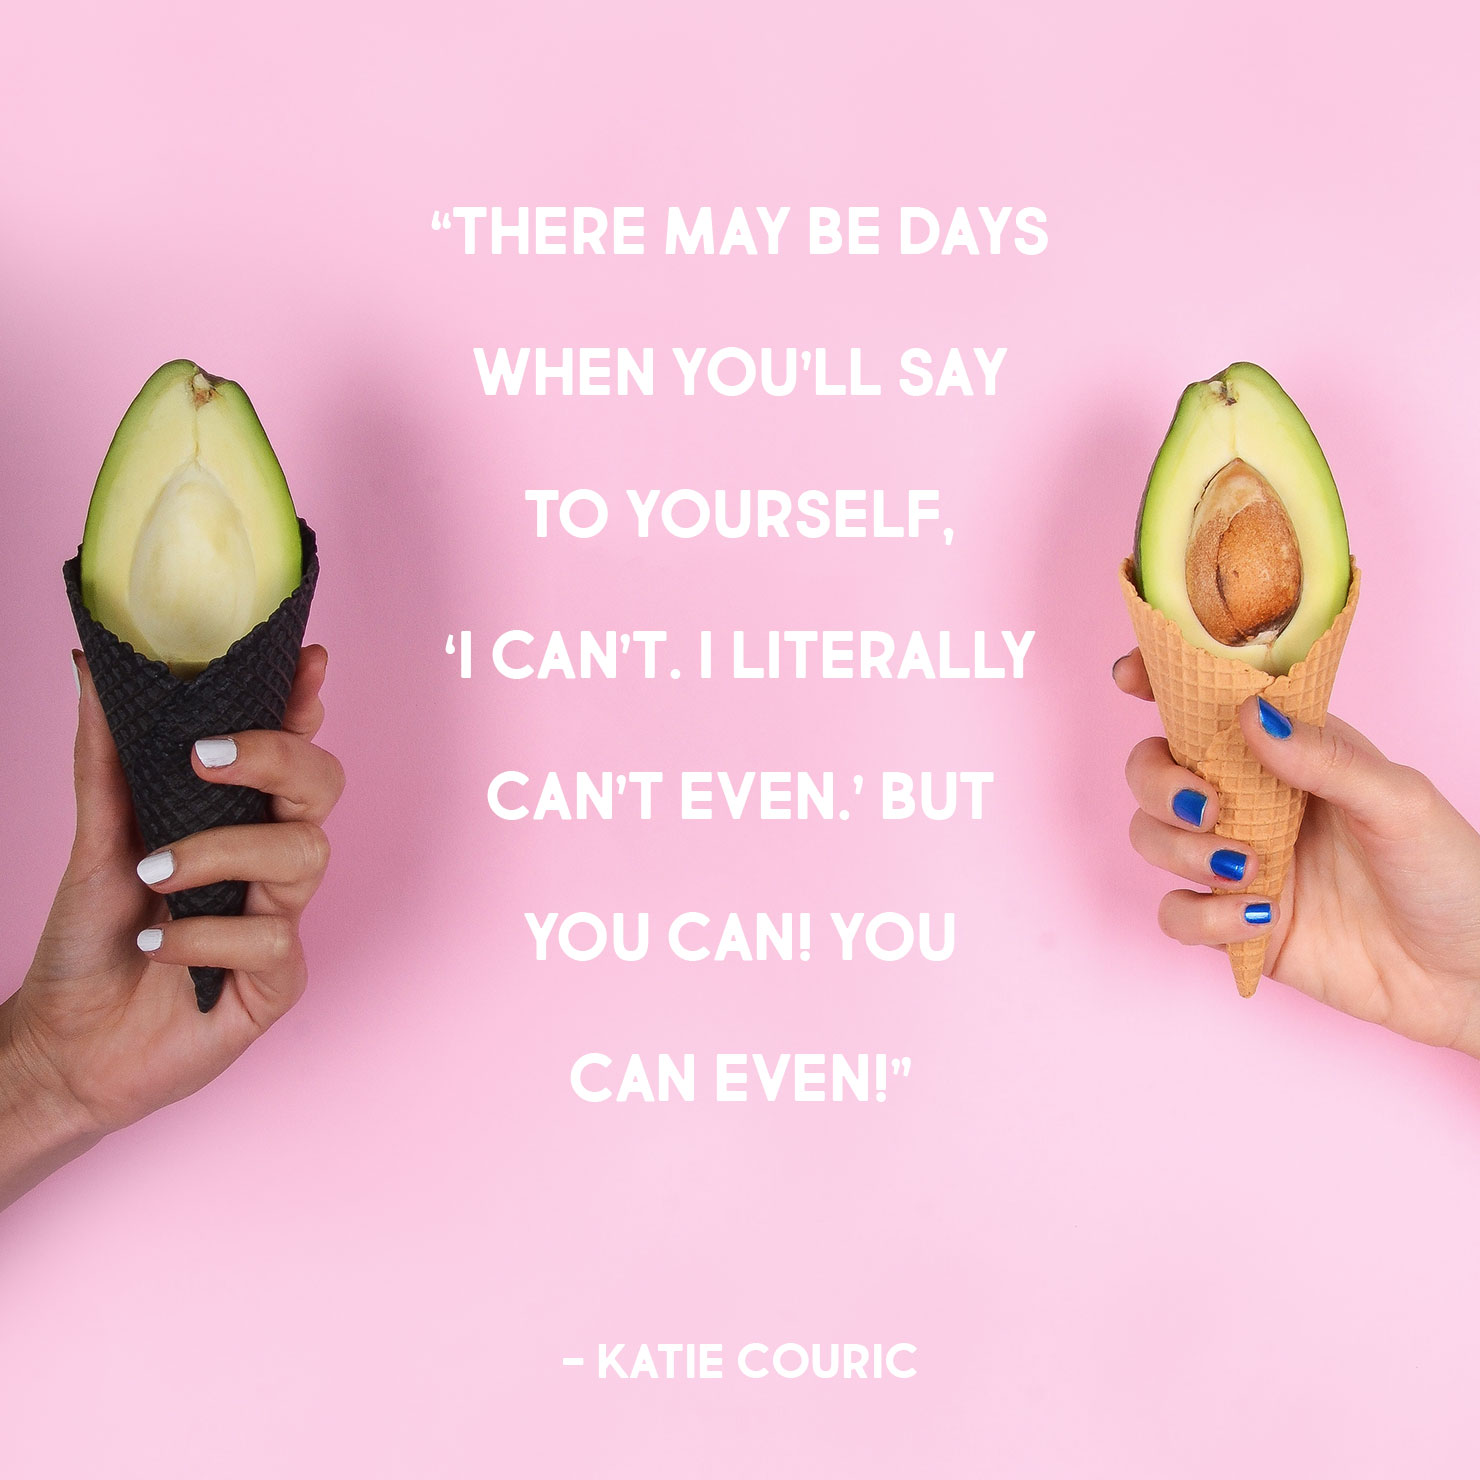 funny graduation quote: There may be days when you'll say to yourself 'I can't, I literally can't even' but you can! you can even! - Katie Couric